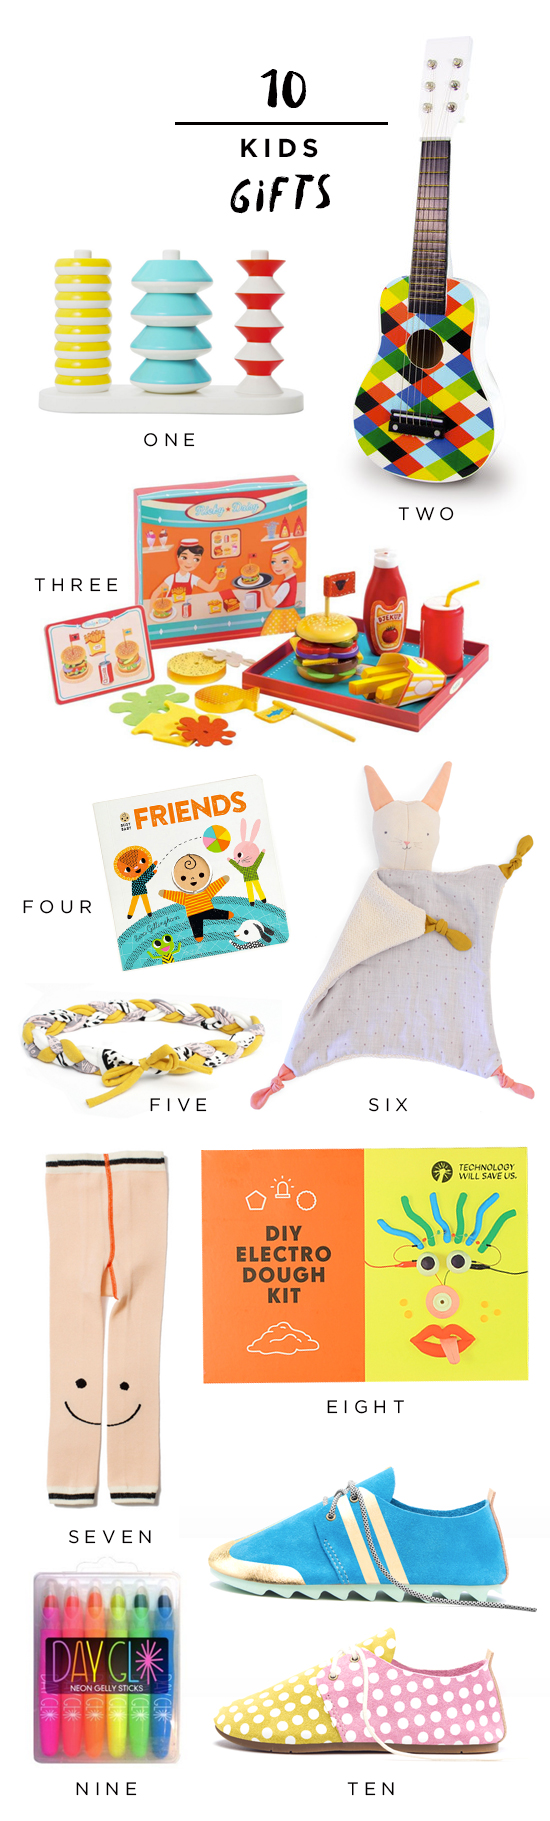 10 Kids Gifts